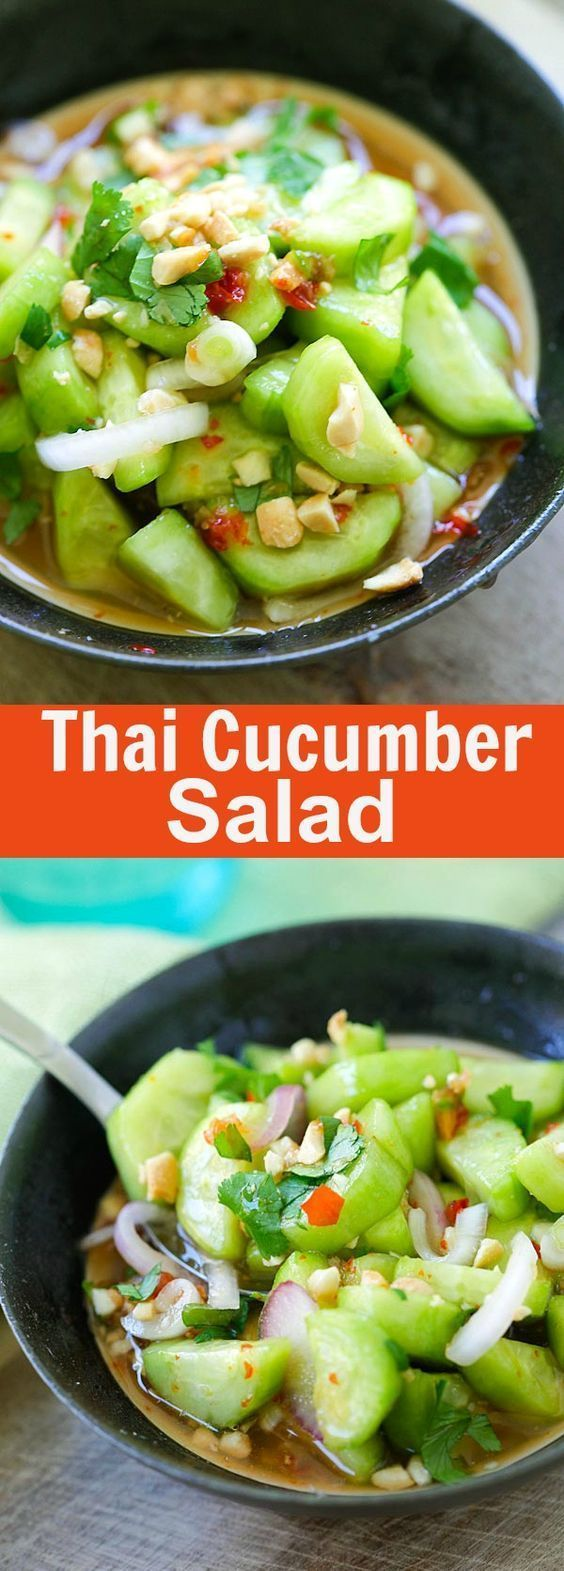 Thai Cucumber Salad easiest and best homemade Thai cucumber salad recipe that